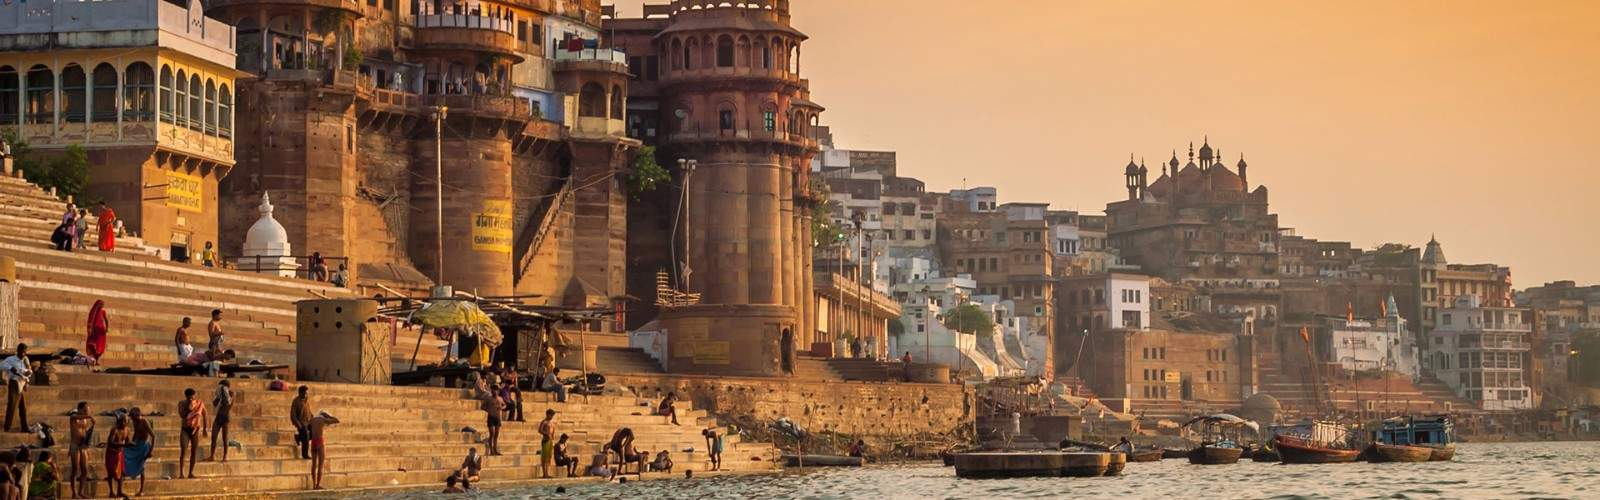 Varanasi Short Stay Tour | Wendy Wu Tours